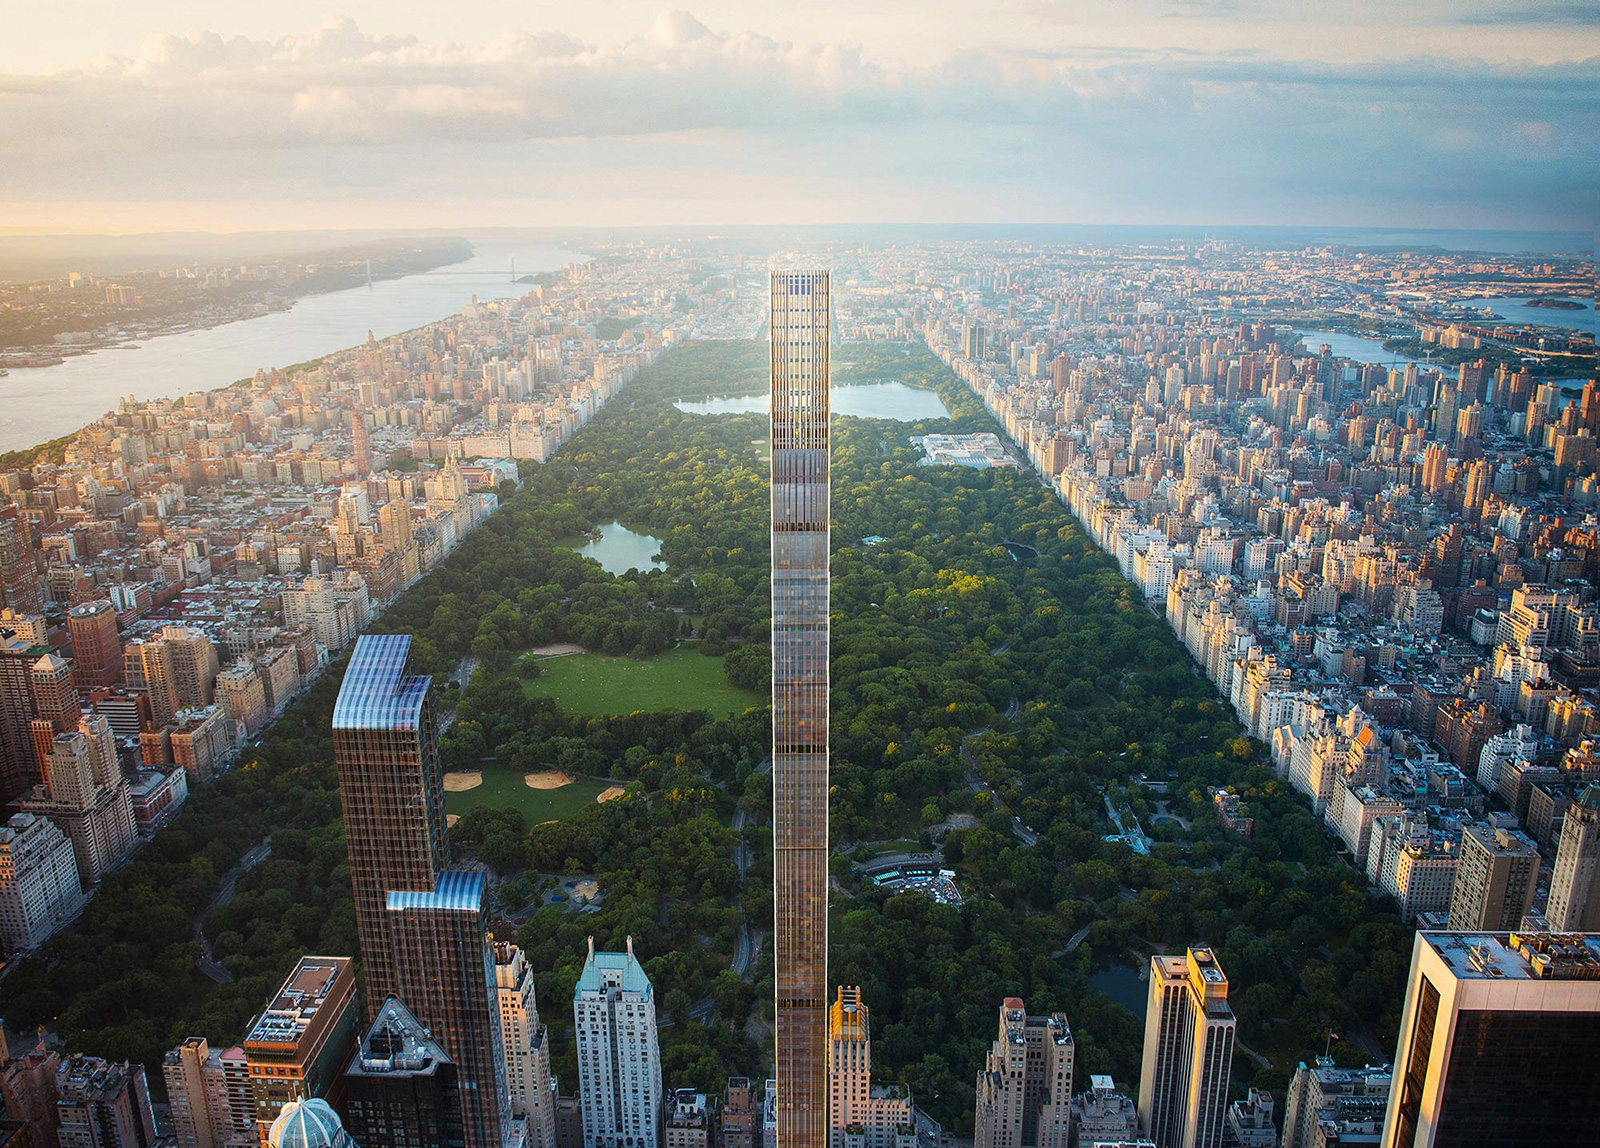 111 West 57th Street - one of the tallest buildings topping out this year